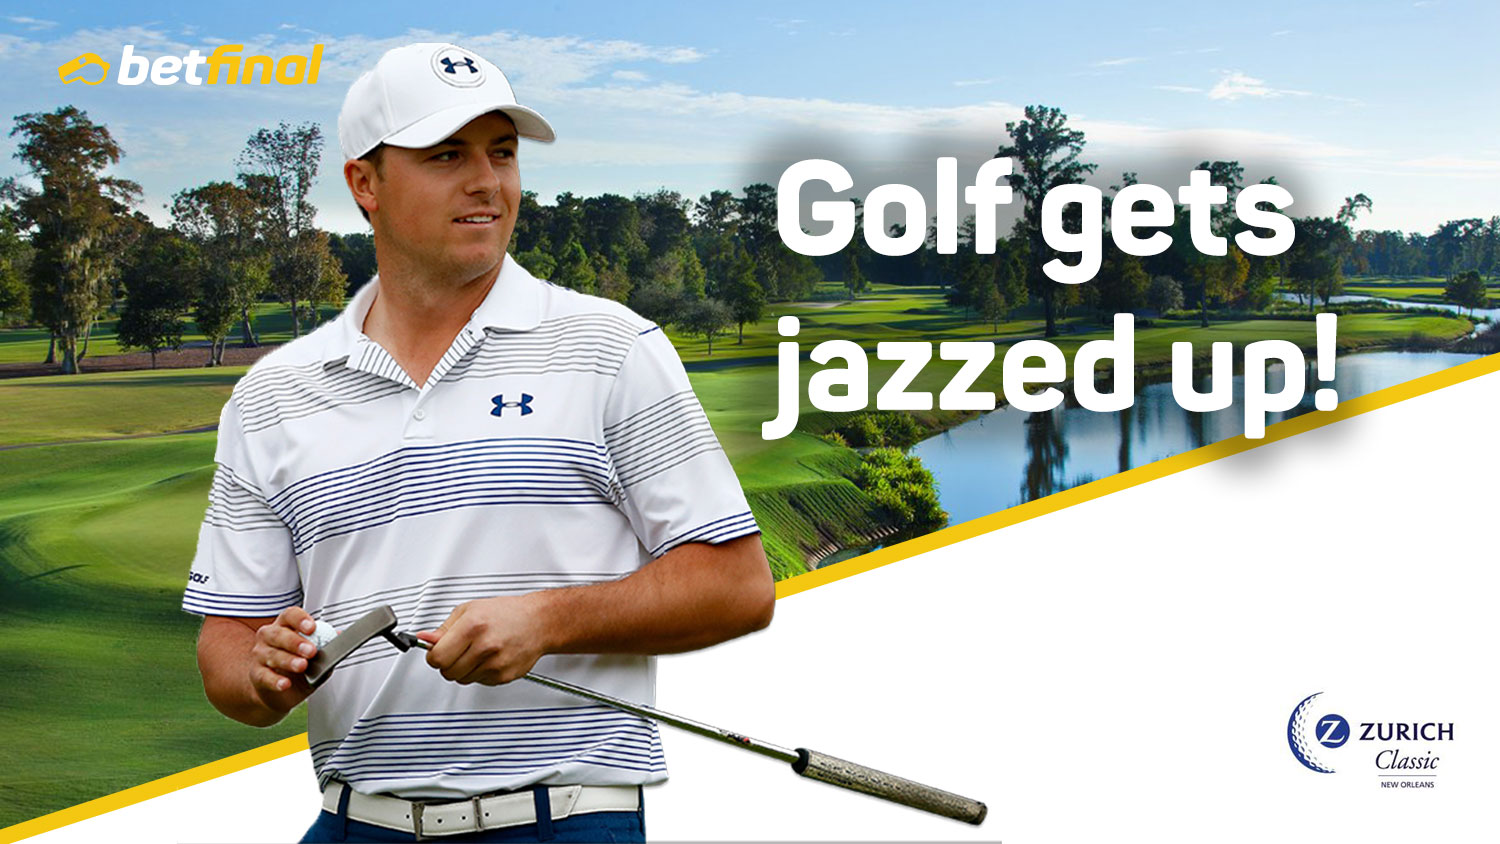 Music, Food, Passion and Golf – PGA Tour: Zurich Classic, Thursday 26th April – Sunday 29th April.